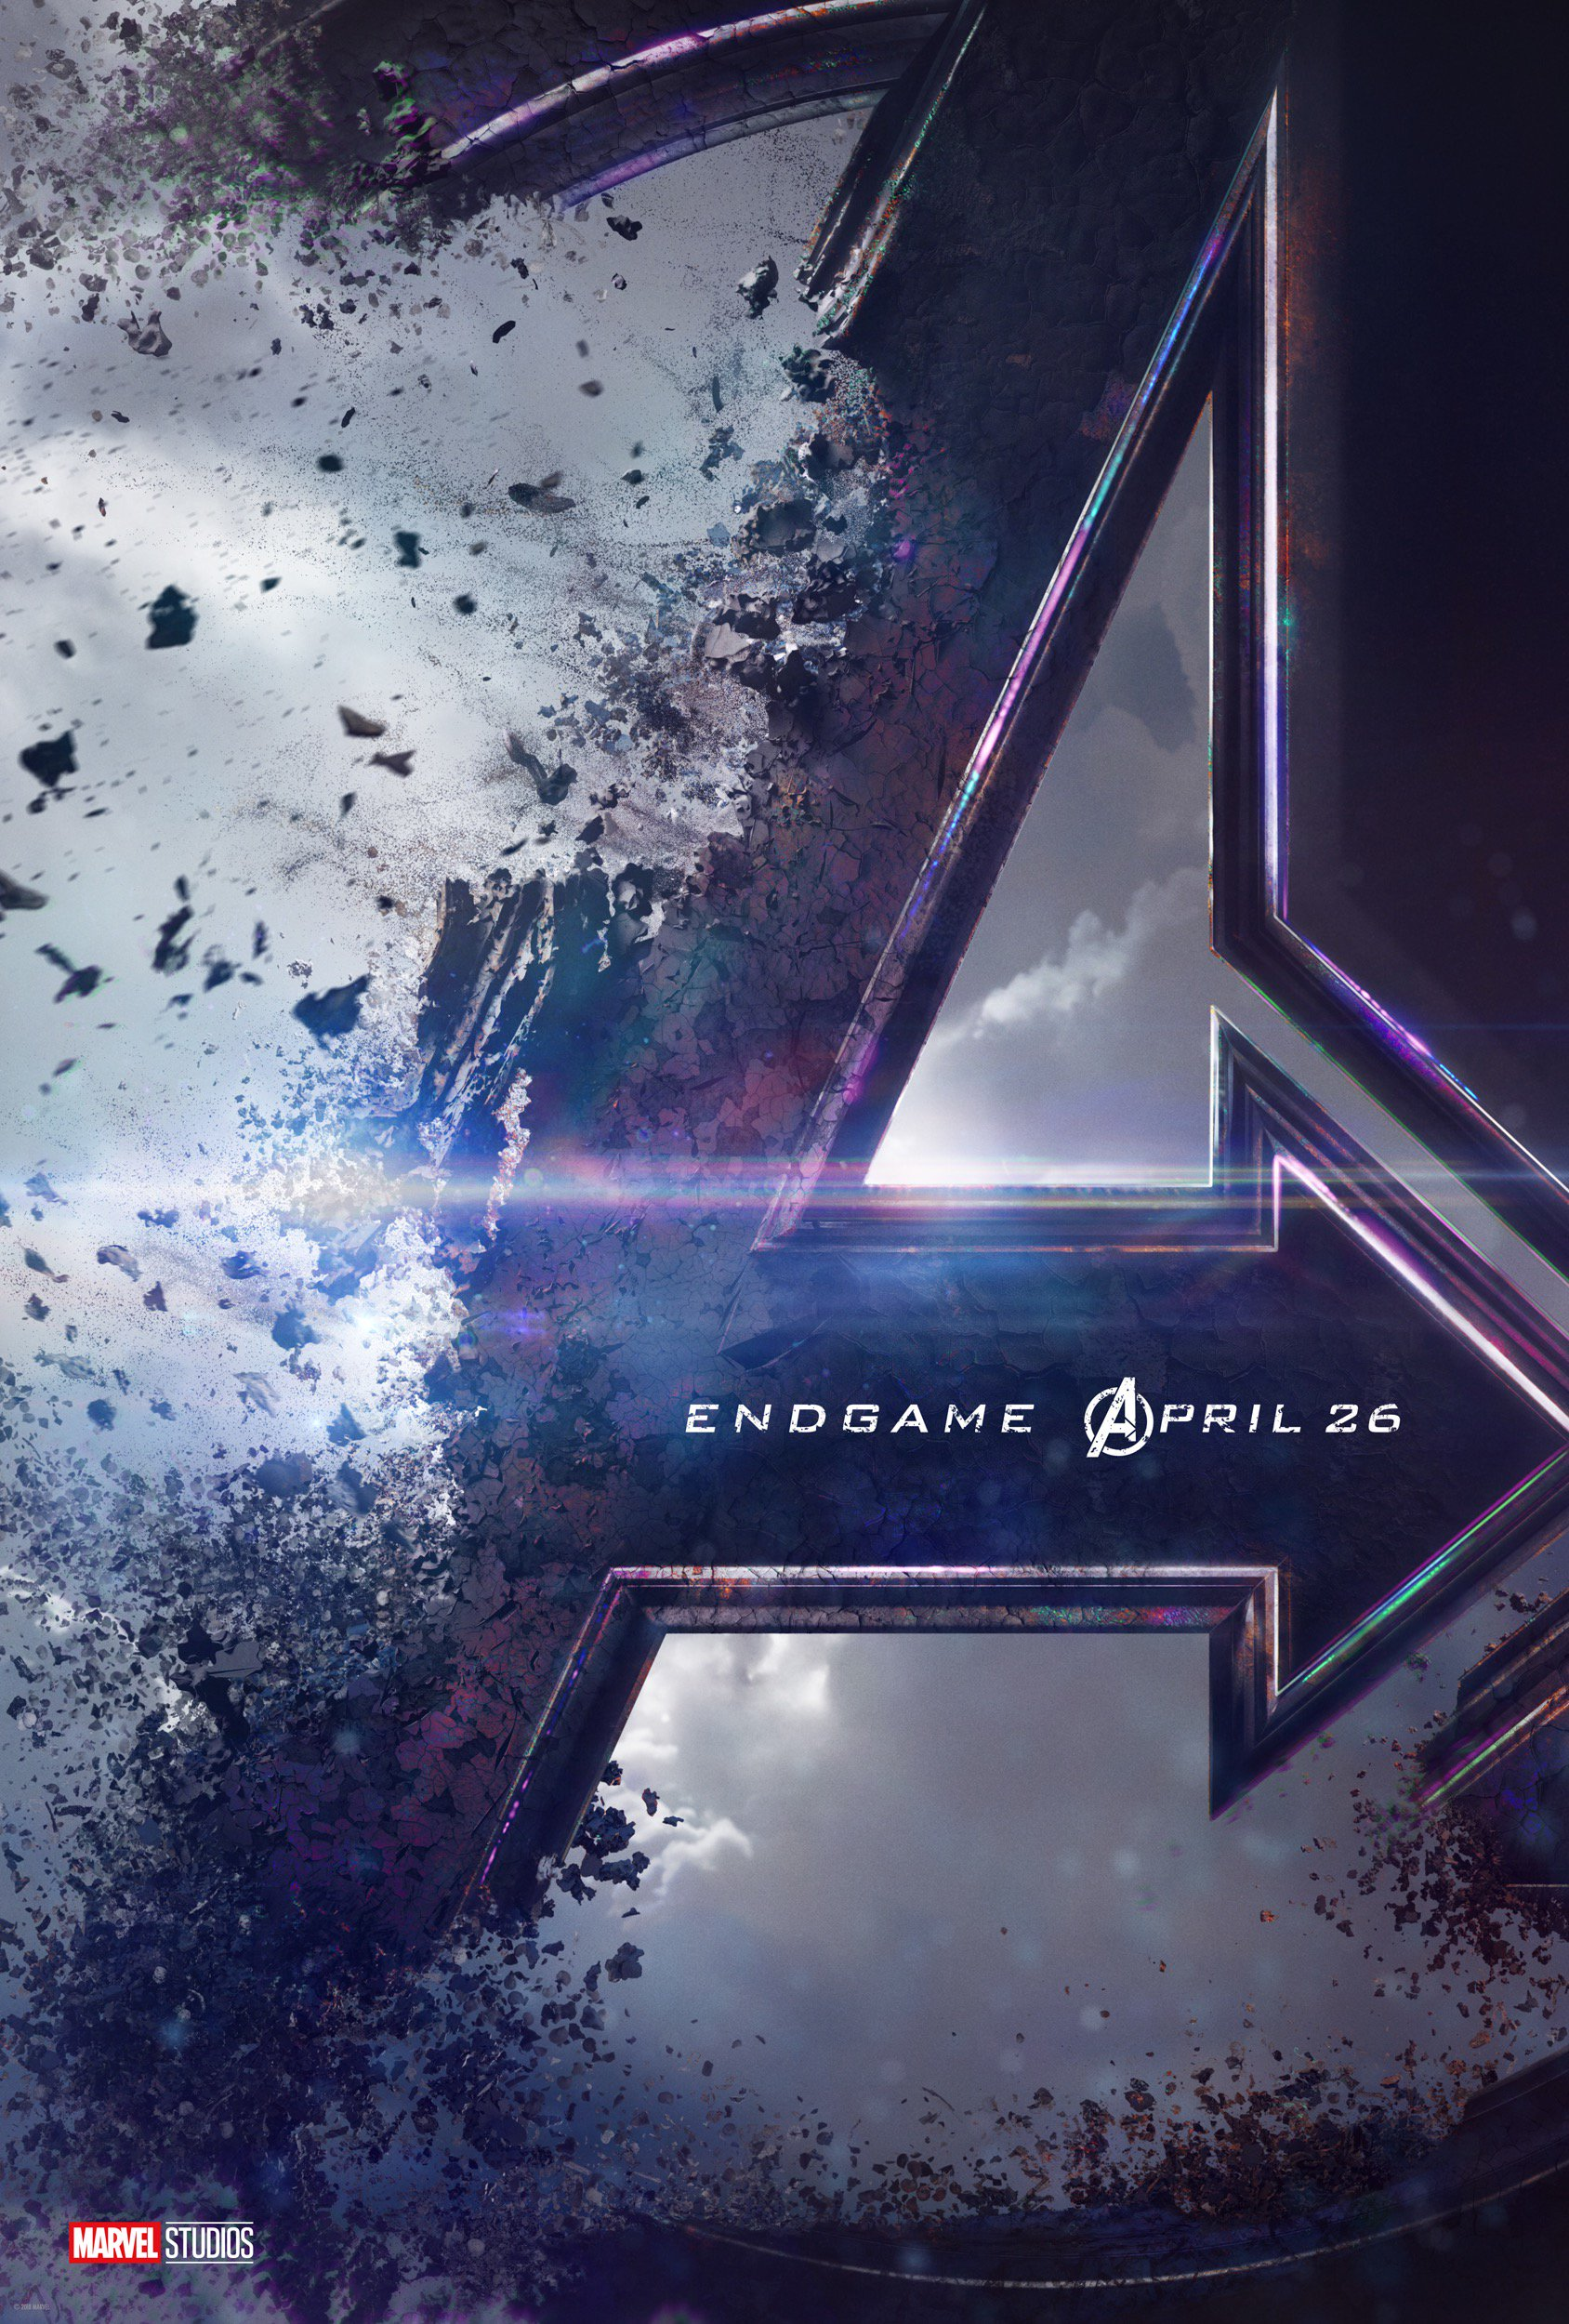 Avengers Endgame Disney Wiki Fandom Powered By Wikia